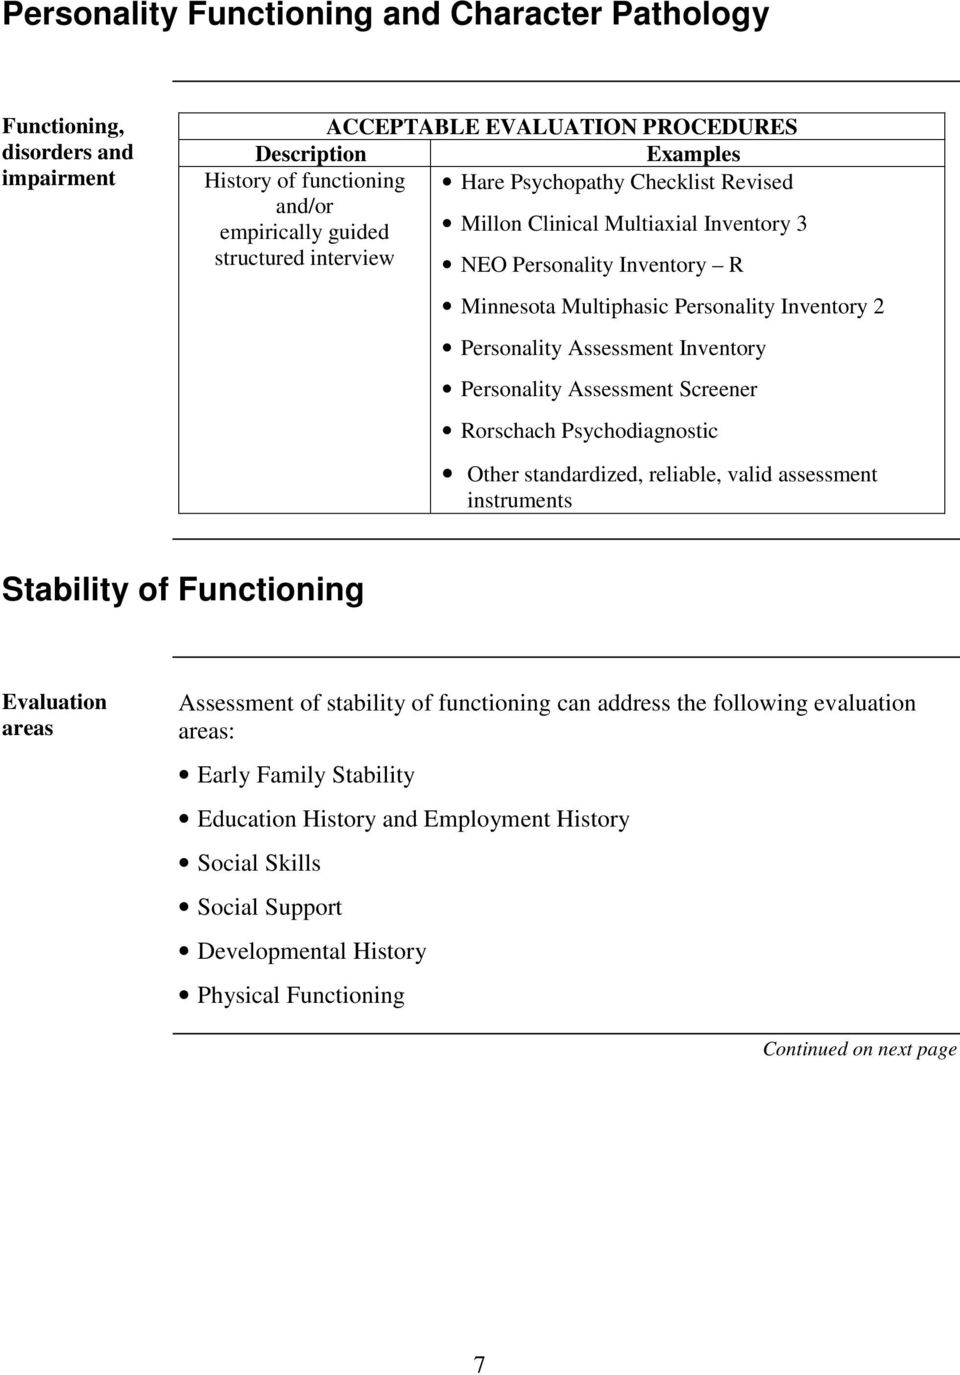 Personality Assessment Screener Rorschach Psychodiagnostic Stability of Functioning Evaluation areas Assessment of stability of functioning can address the following